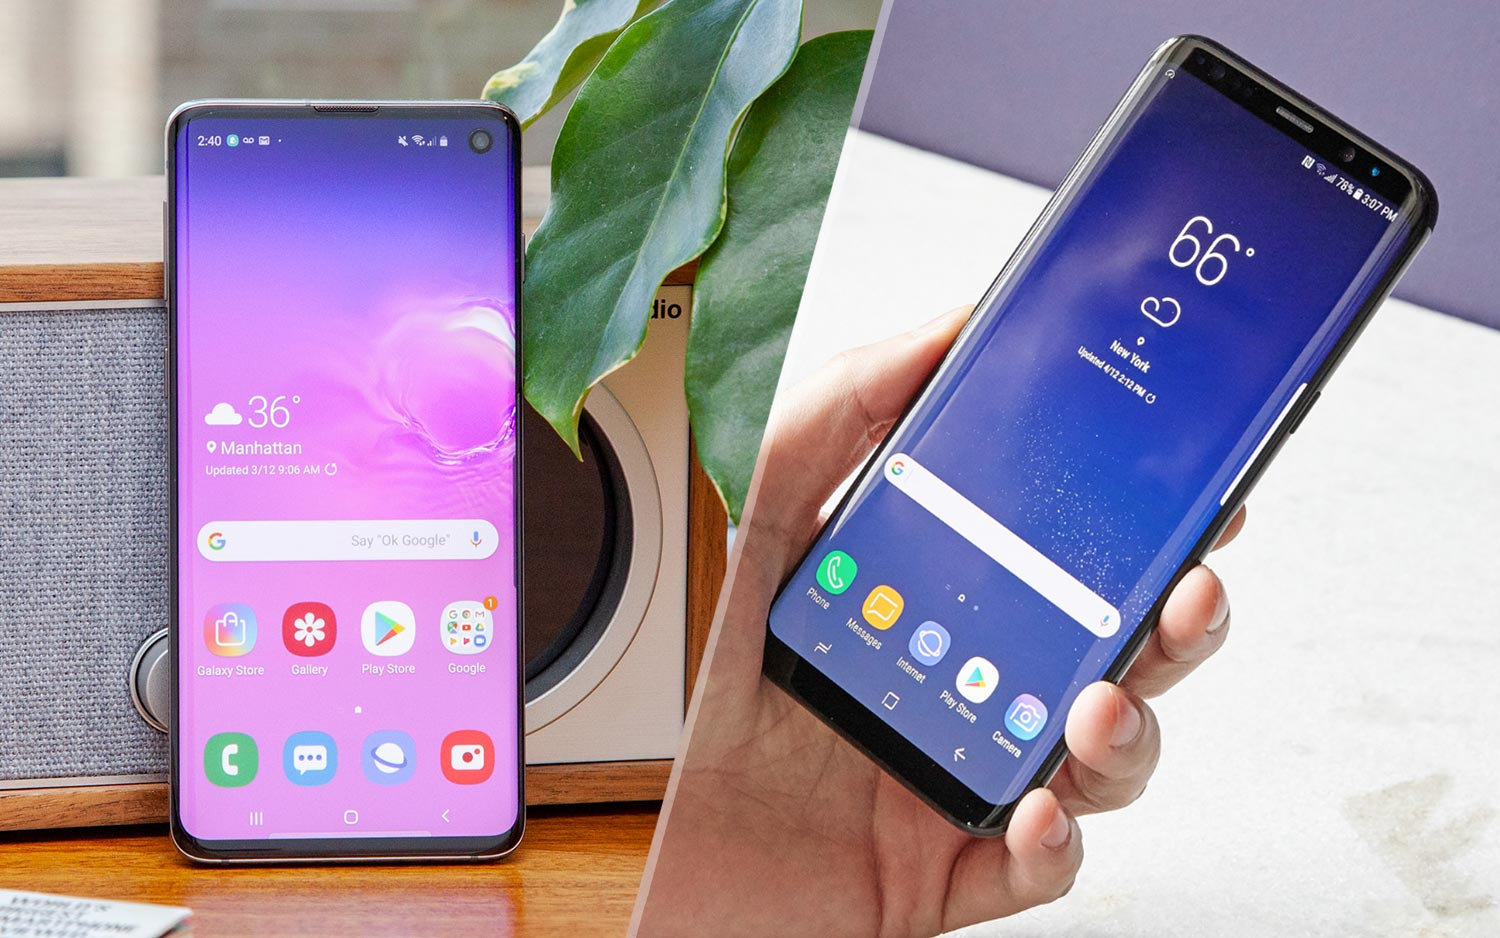 Galaxy S10 vs. samsung s8 camera specs Shootout: Is It Worth the Upgrade?